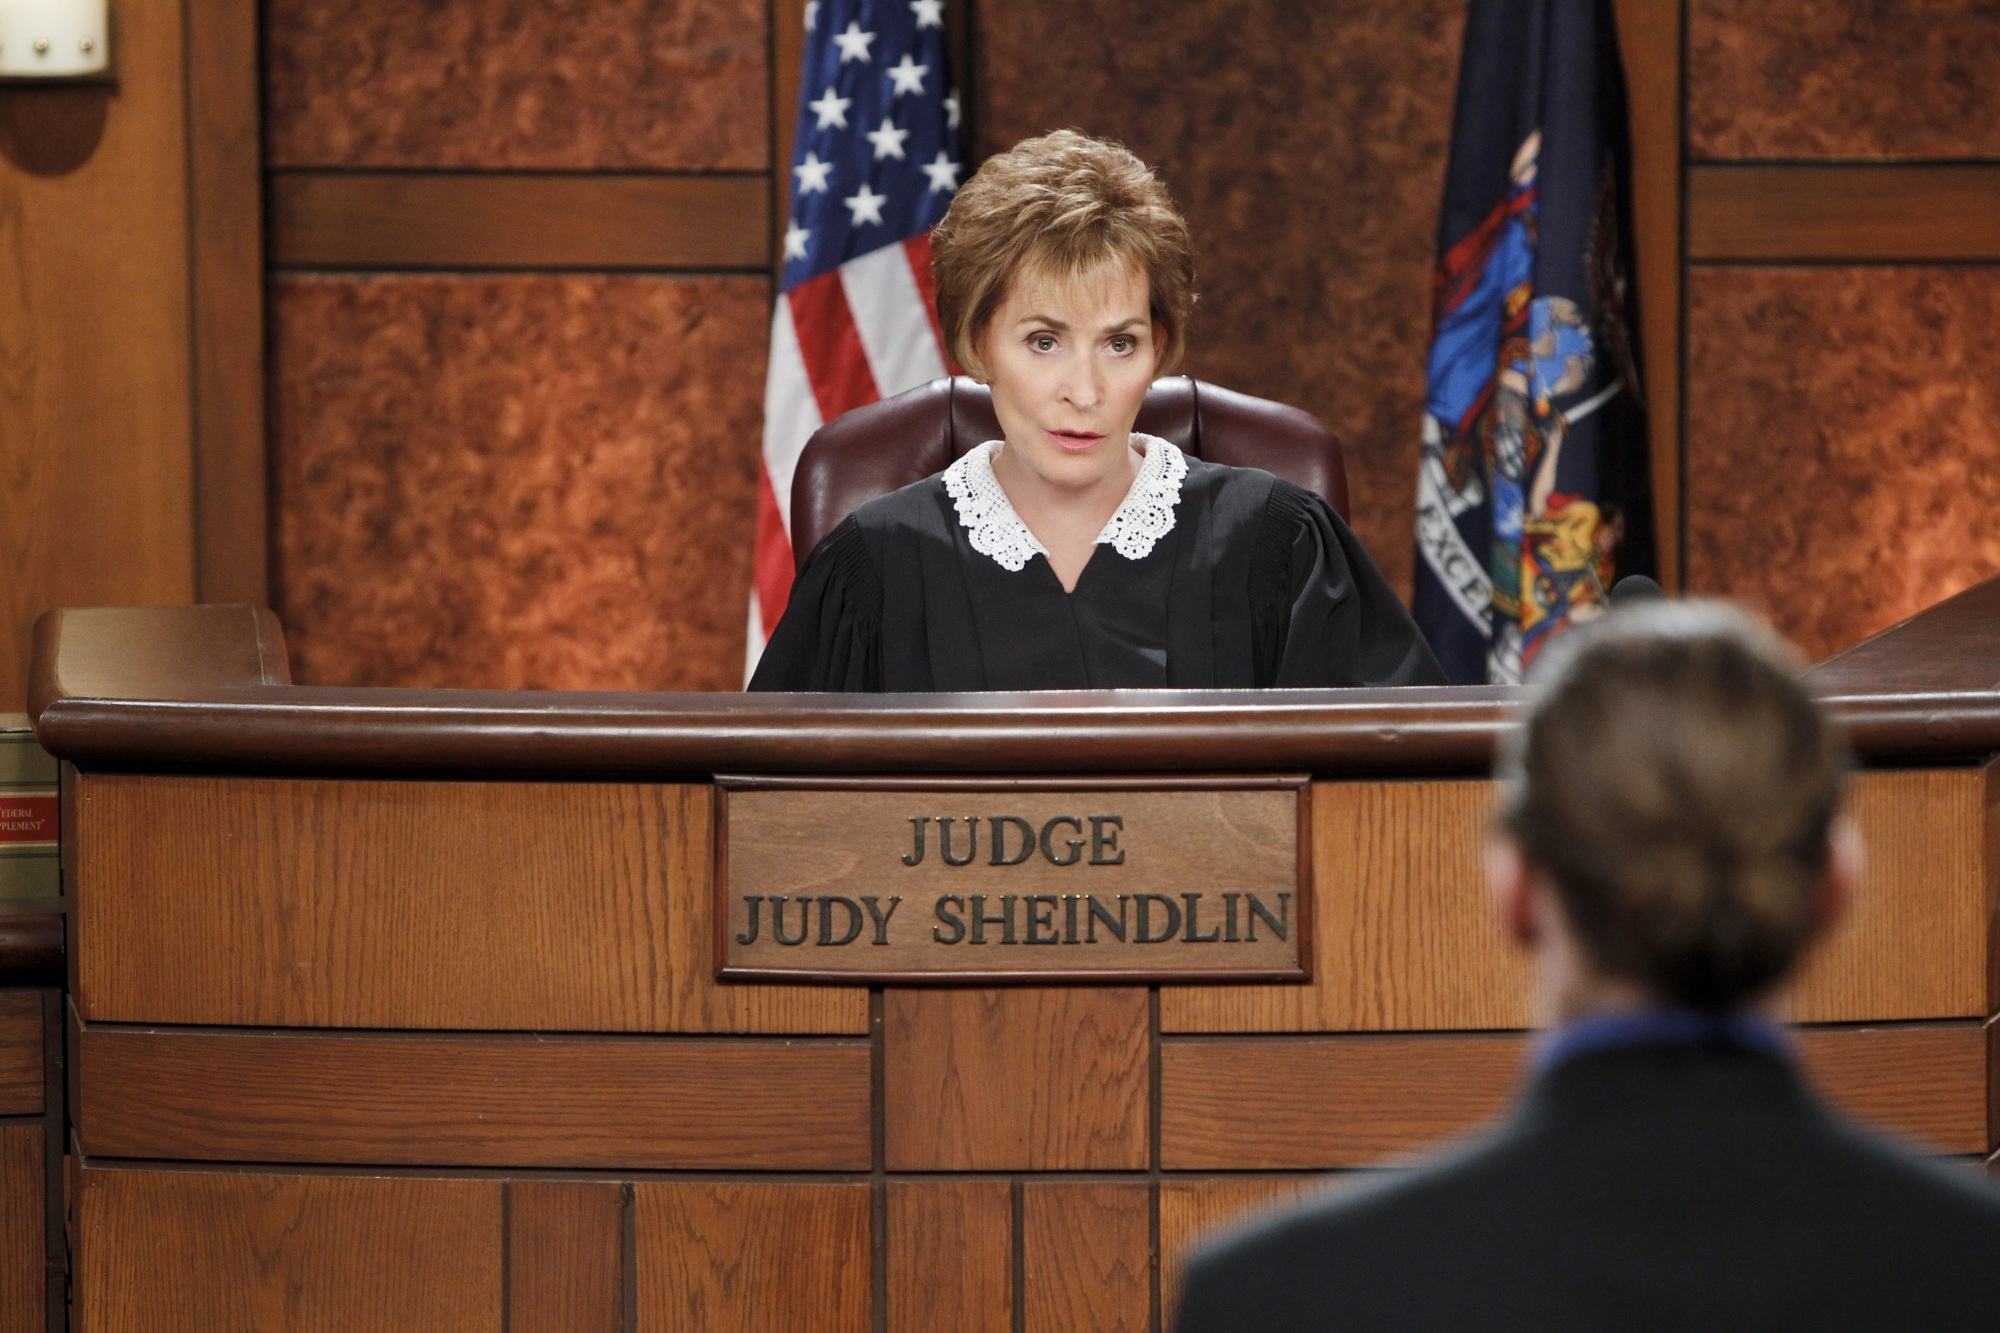 """In an undated handout photo, Judge Judith Sheindlin in a scene from her television show """"Judge Judy."""" A rarity for DVR-embattled television programming, """"Judge Judy"""" — in its 18th season — has ratings that are climbing, which prompted CBS to create an evening special on Tuesday for the straight-talking star. (Sonja Flemming/CBS via The New York Times) — NO SALES; FOR EDITORIAL USE ONLY WITH STORY SLUGGED JUDGE JUDY BY BROOKS BARNES. ALL OTHER USE PROHIBITED."""